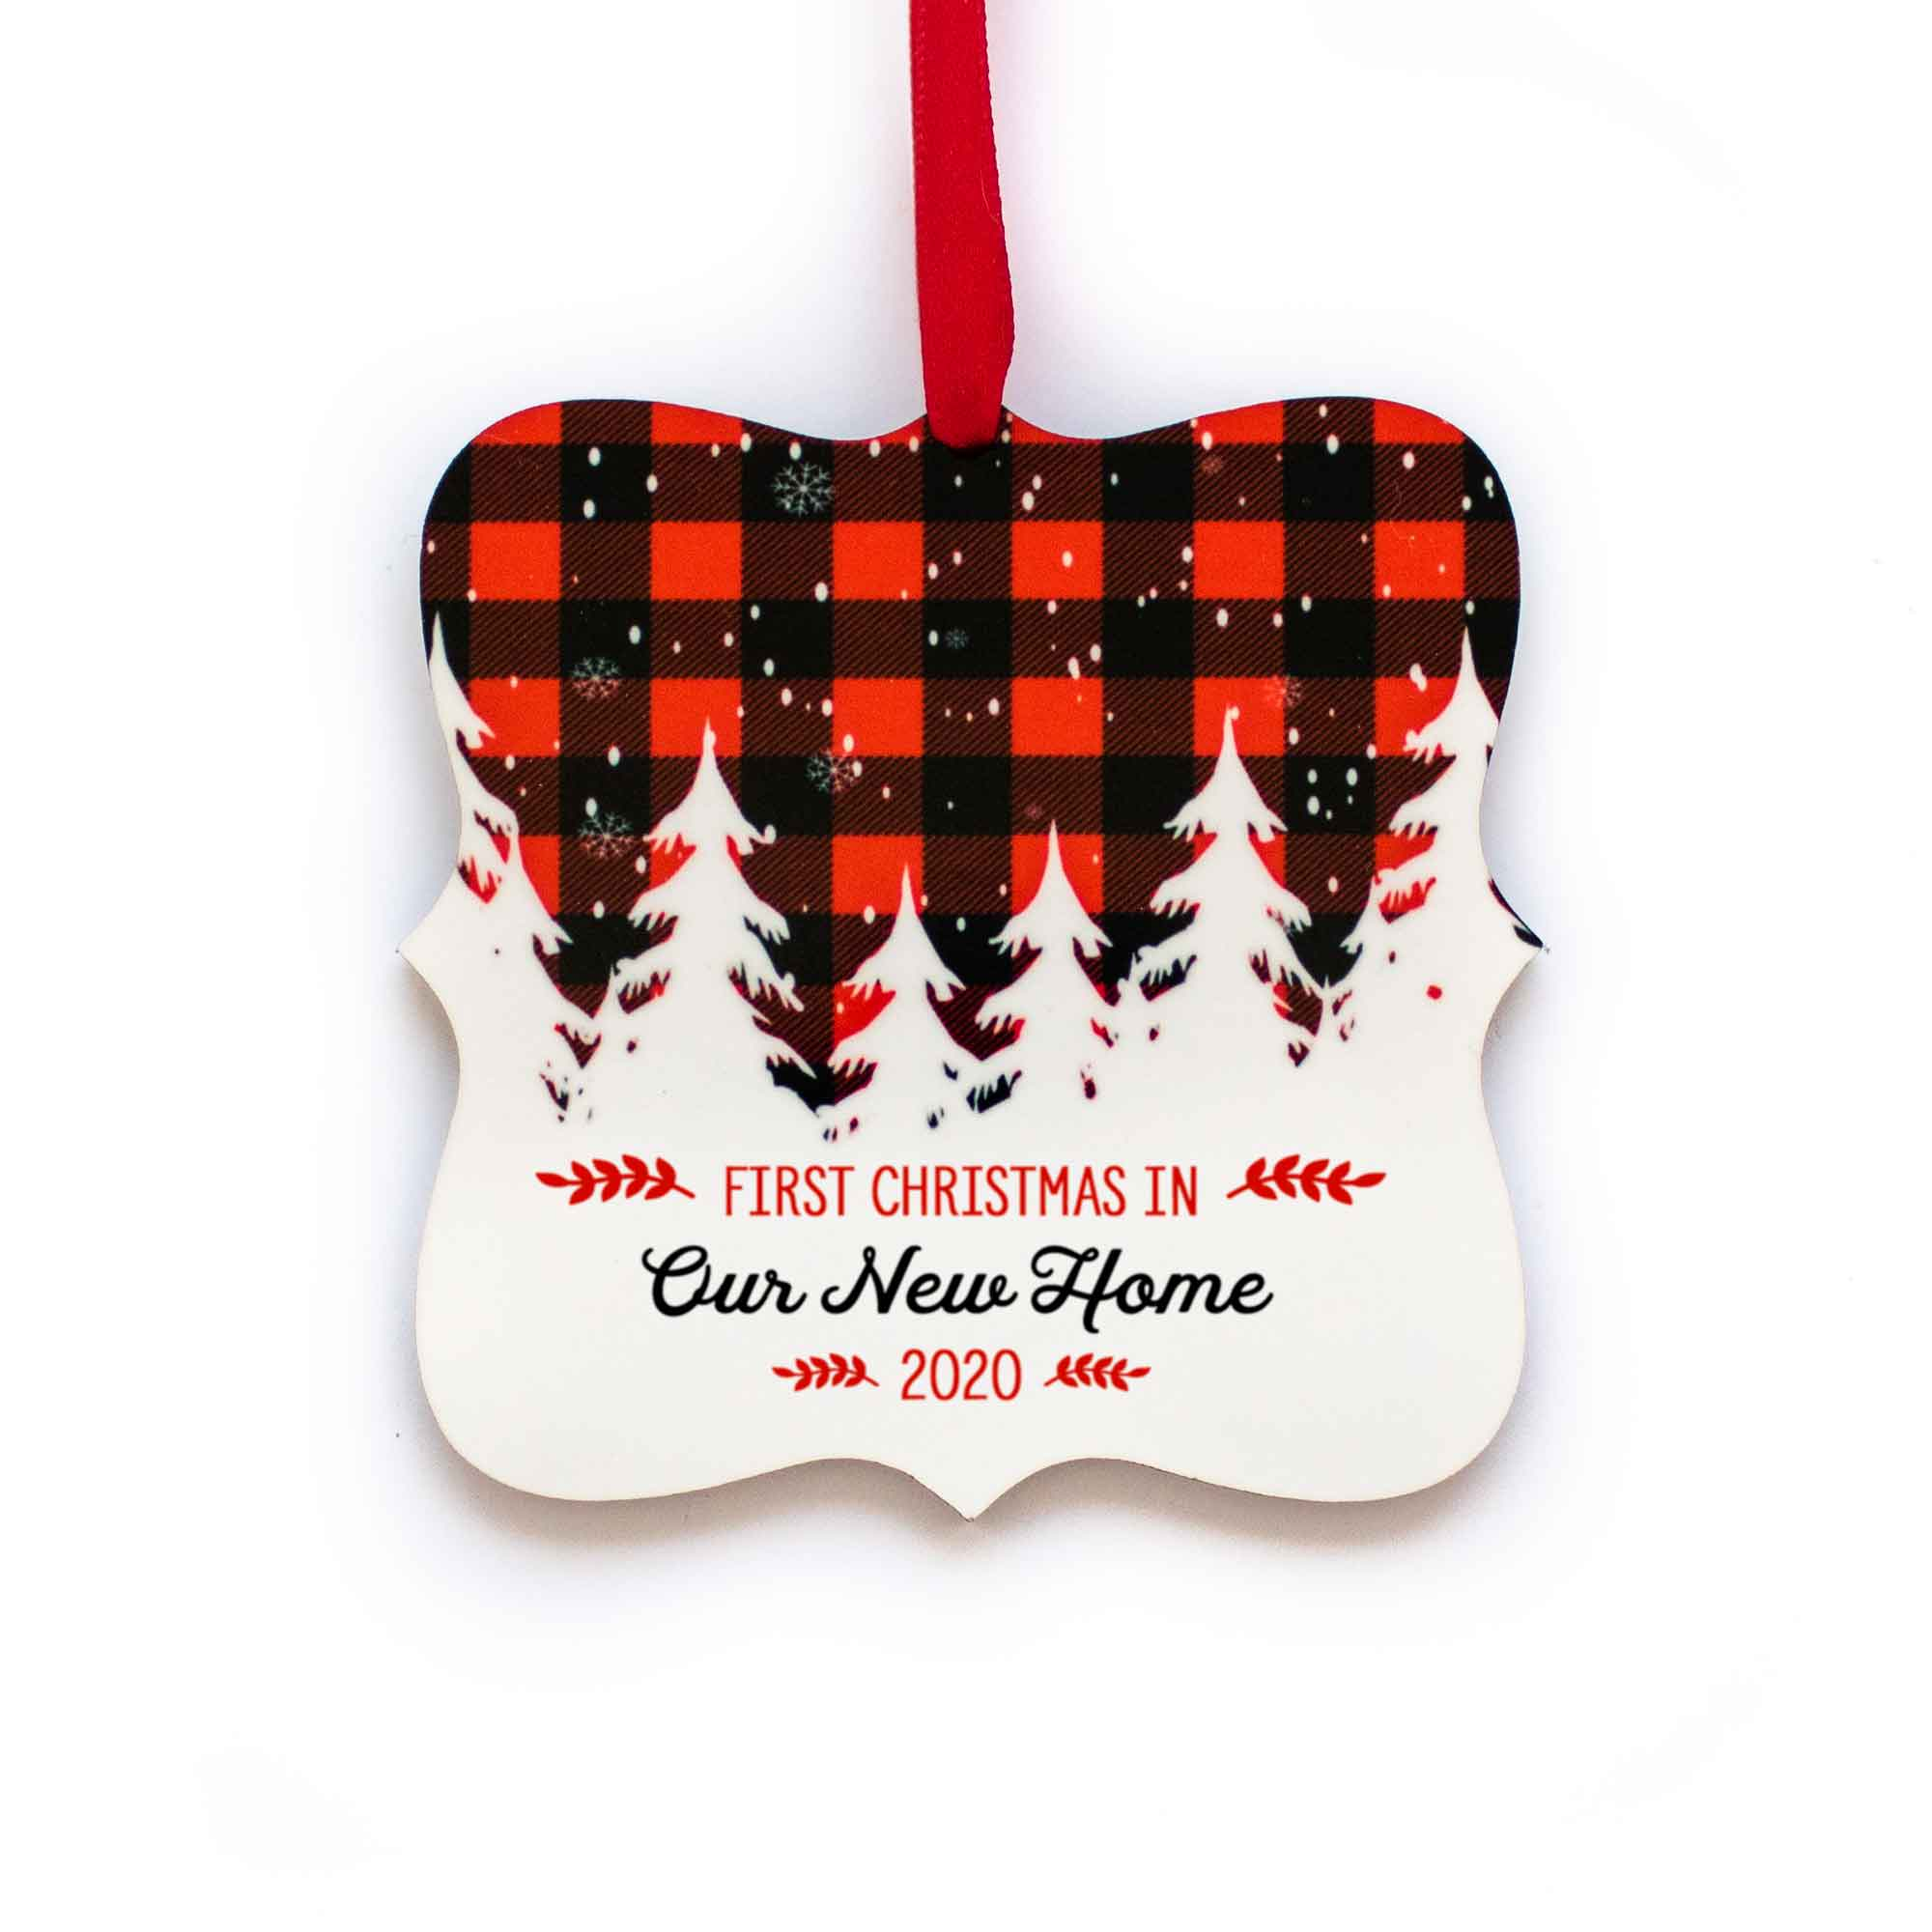 CopyrightPaisleyGroveGIFTS S502g Our New Home Christmas Ornament with ribbon in red and black buffalo check design